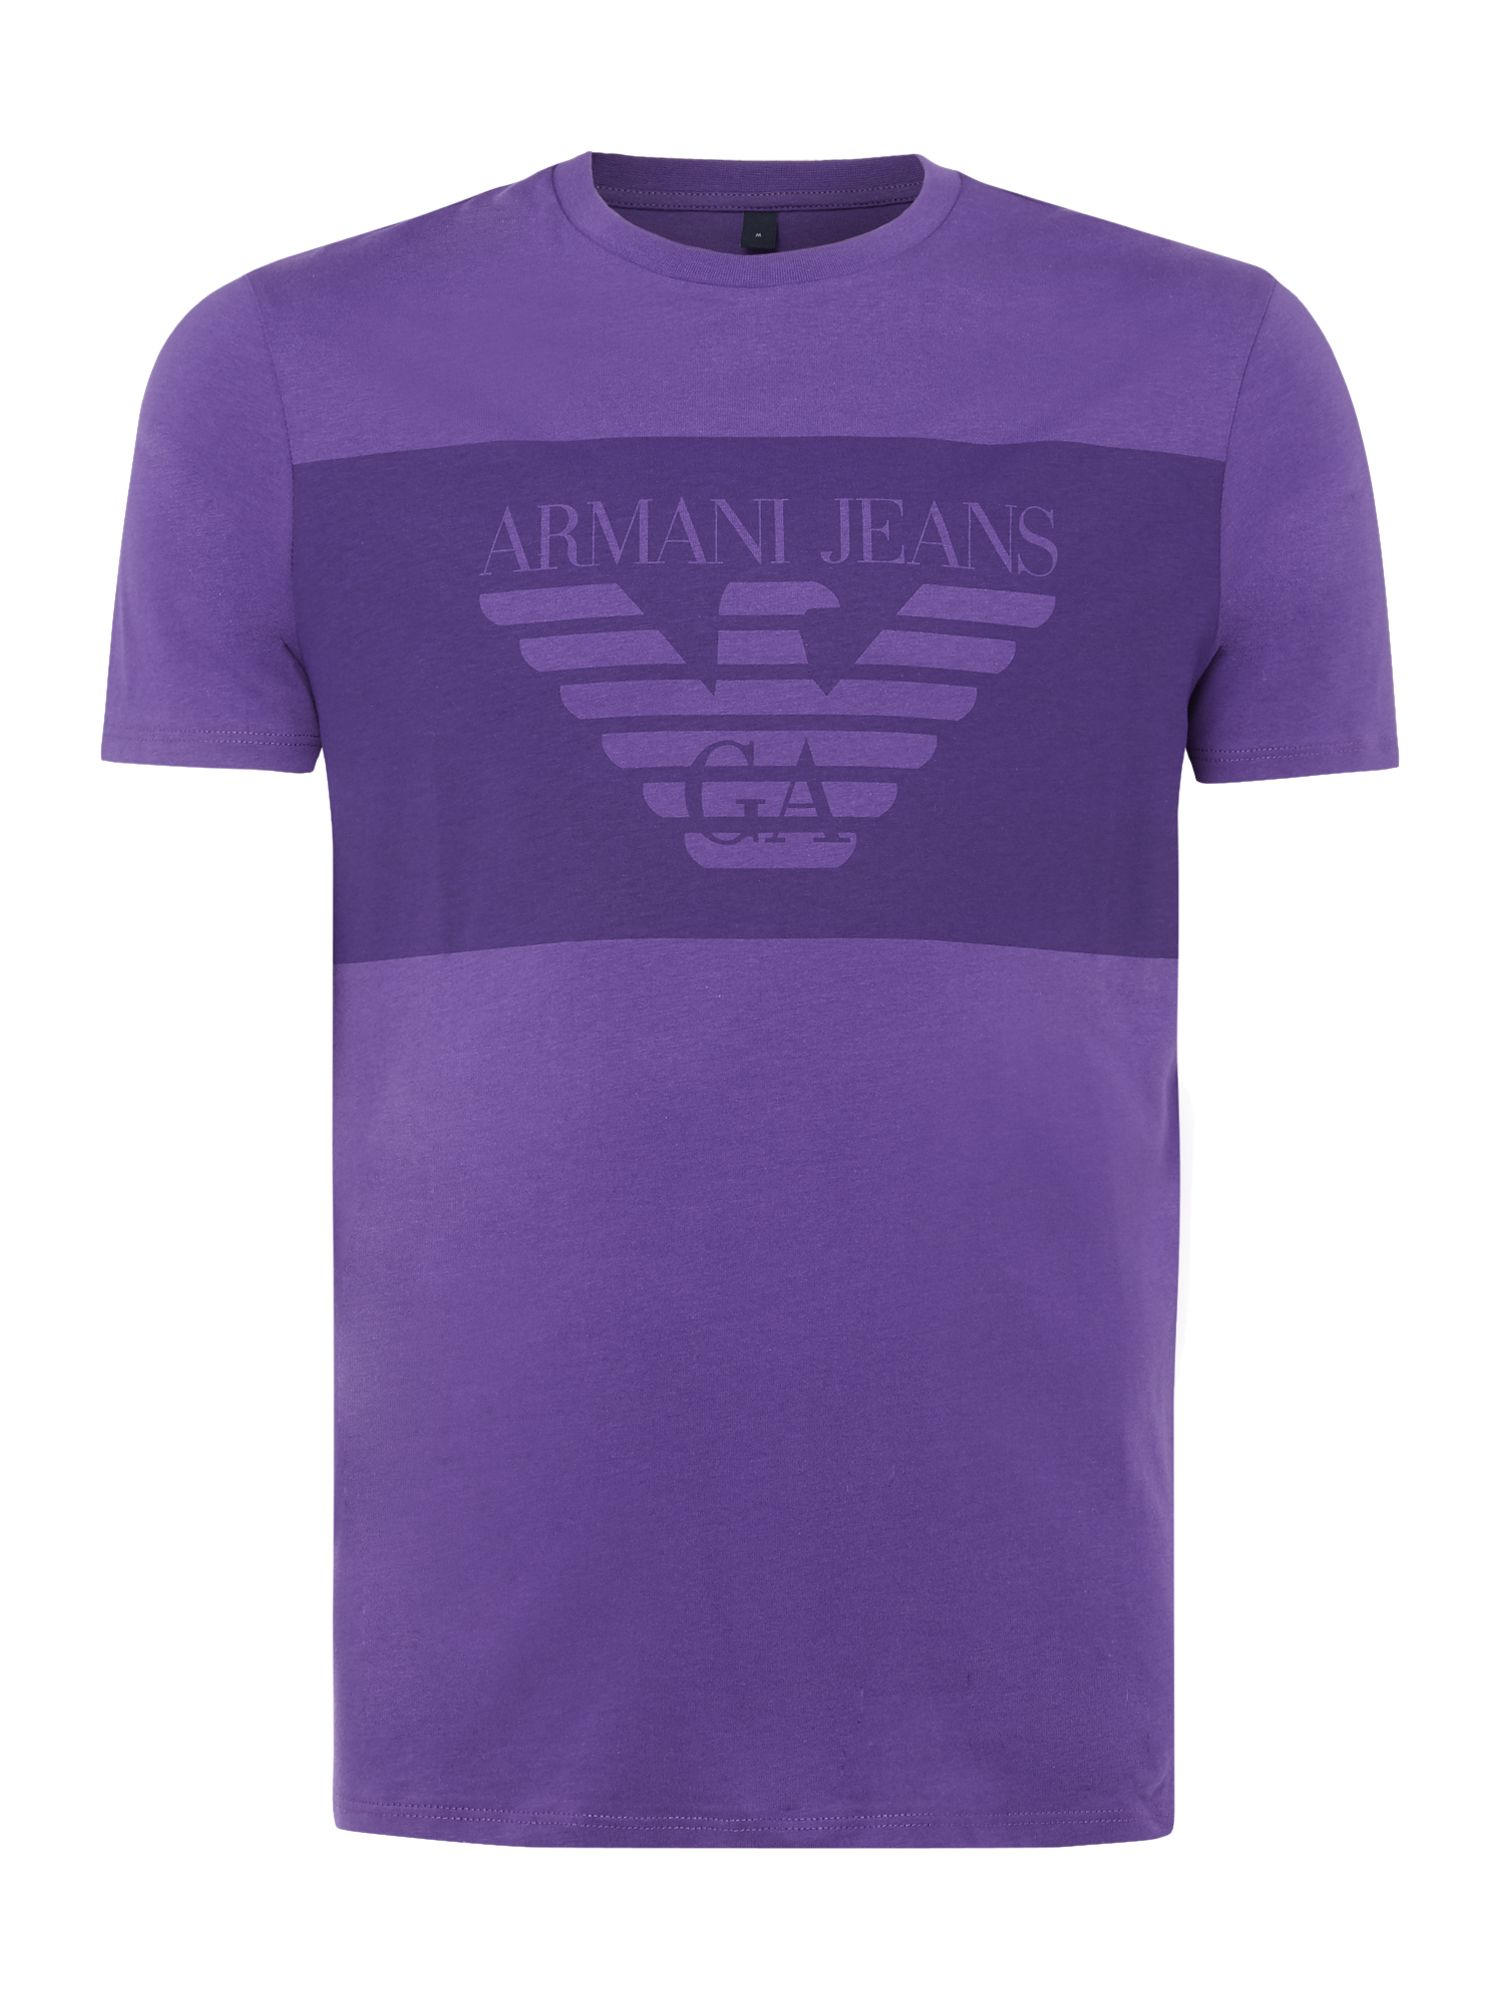 Mens Armani Jeans Regular fit large chest banner logo tshirt Purple